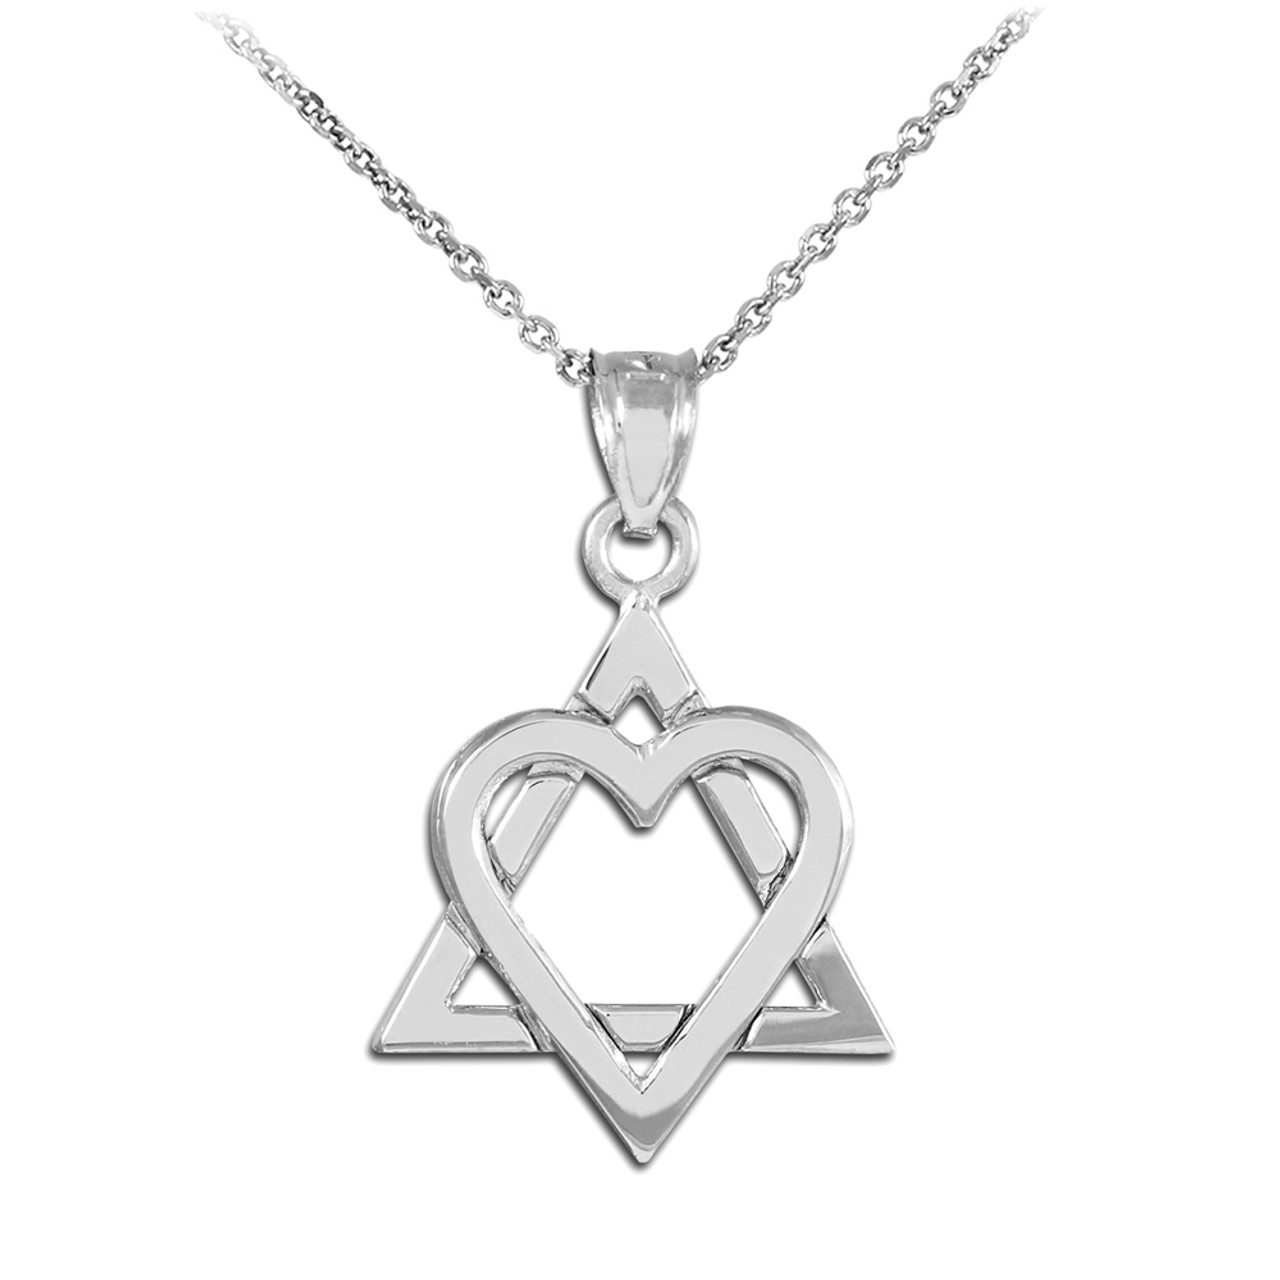 925 sterling silver polished star of david heart pendant necklace 925 sterling silver star of david heart medium pendant necklace aloadofball Image collections